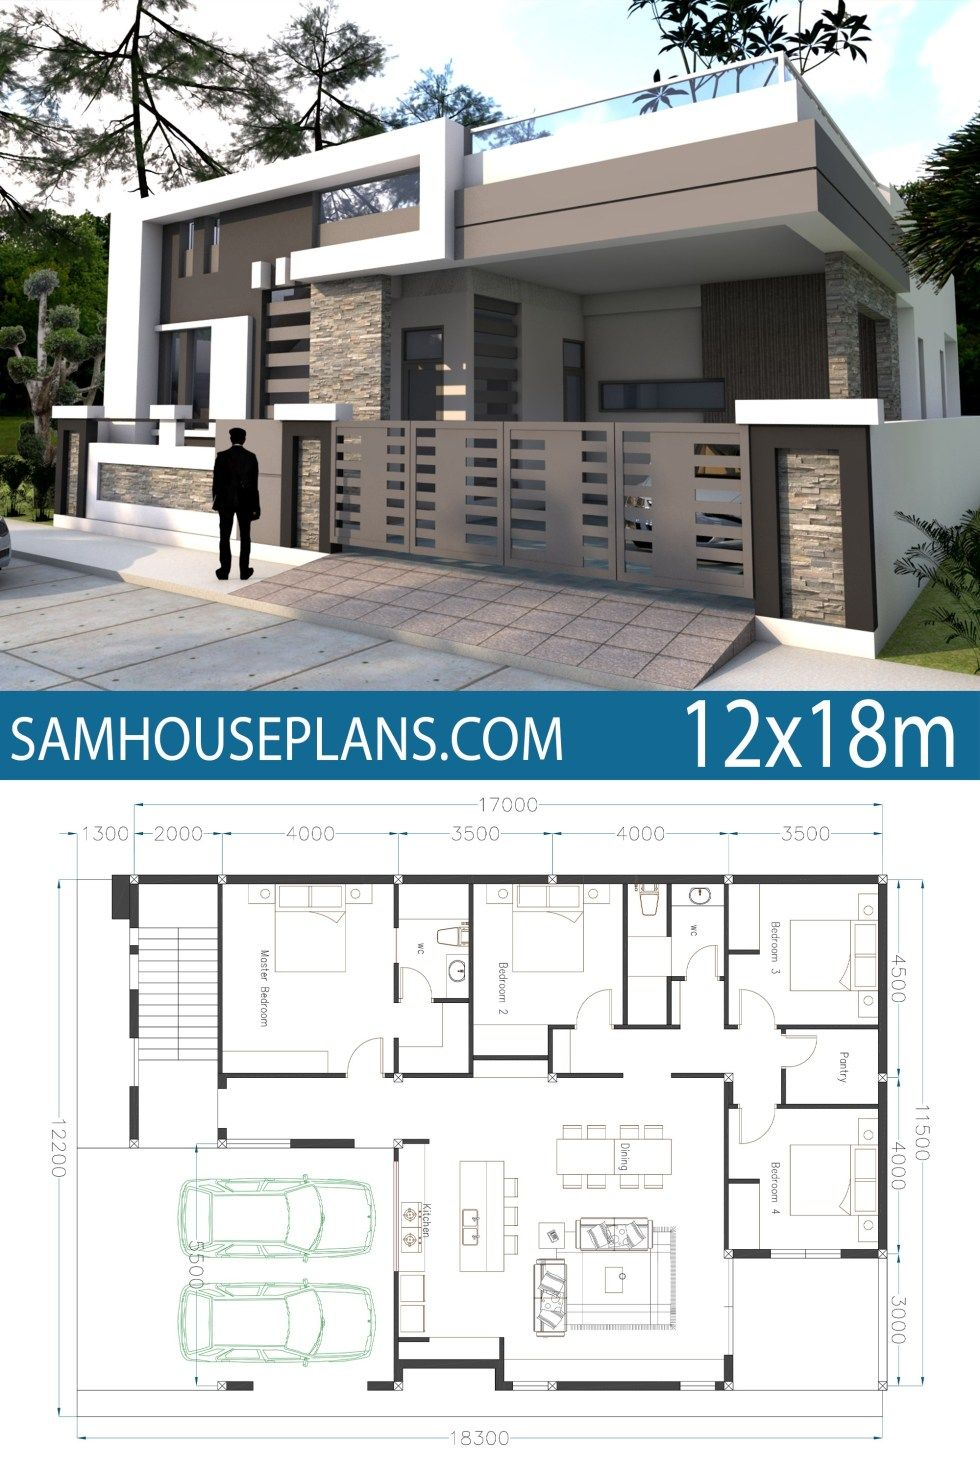 Home Design 40x60f With 4 Bedrooms Sam House Plans Small